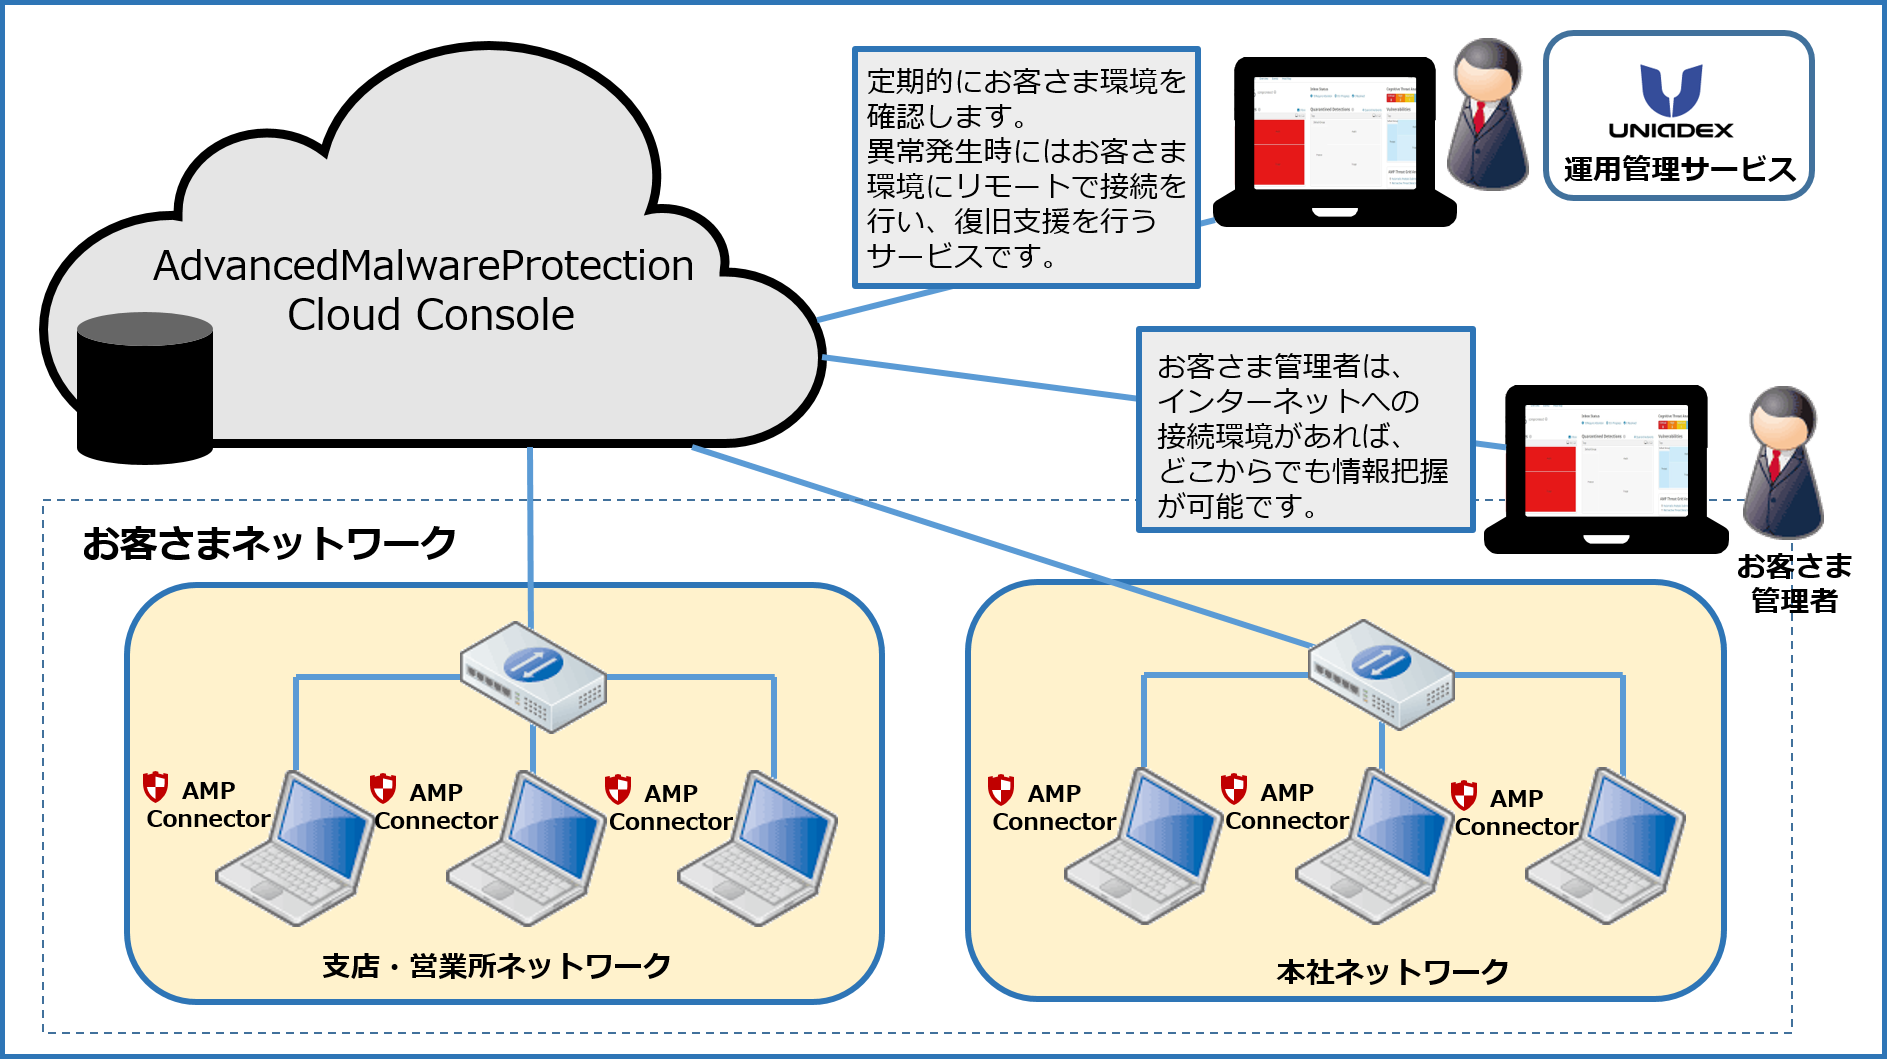 「Cisco Advanced Malware Protection for Endpoints」の導入イメージ図